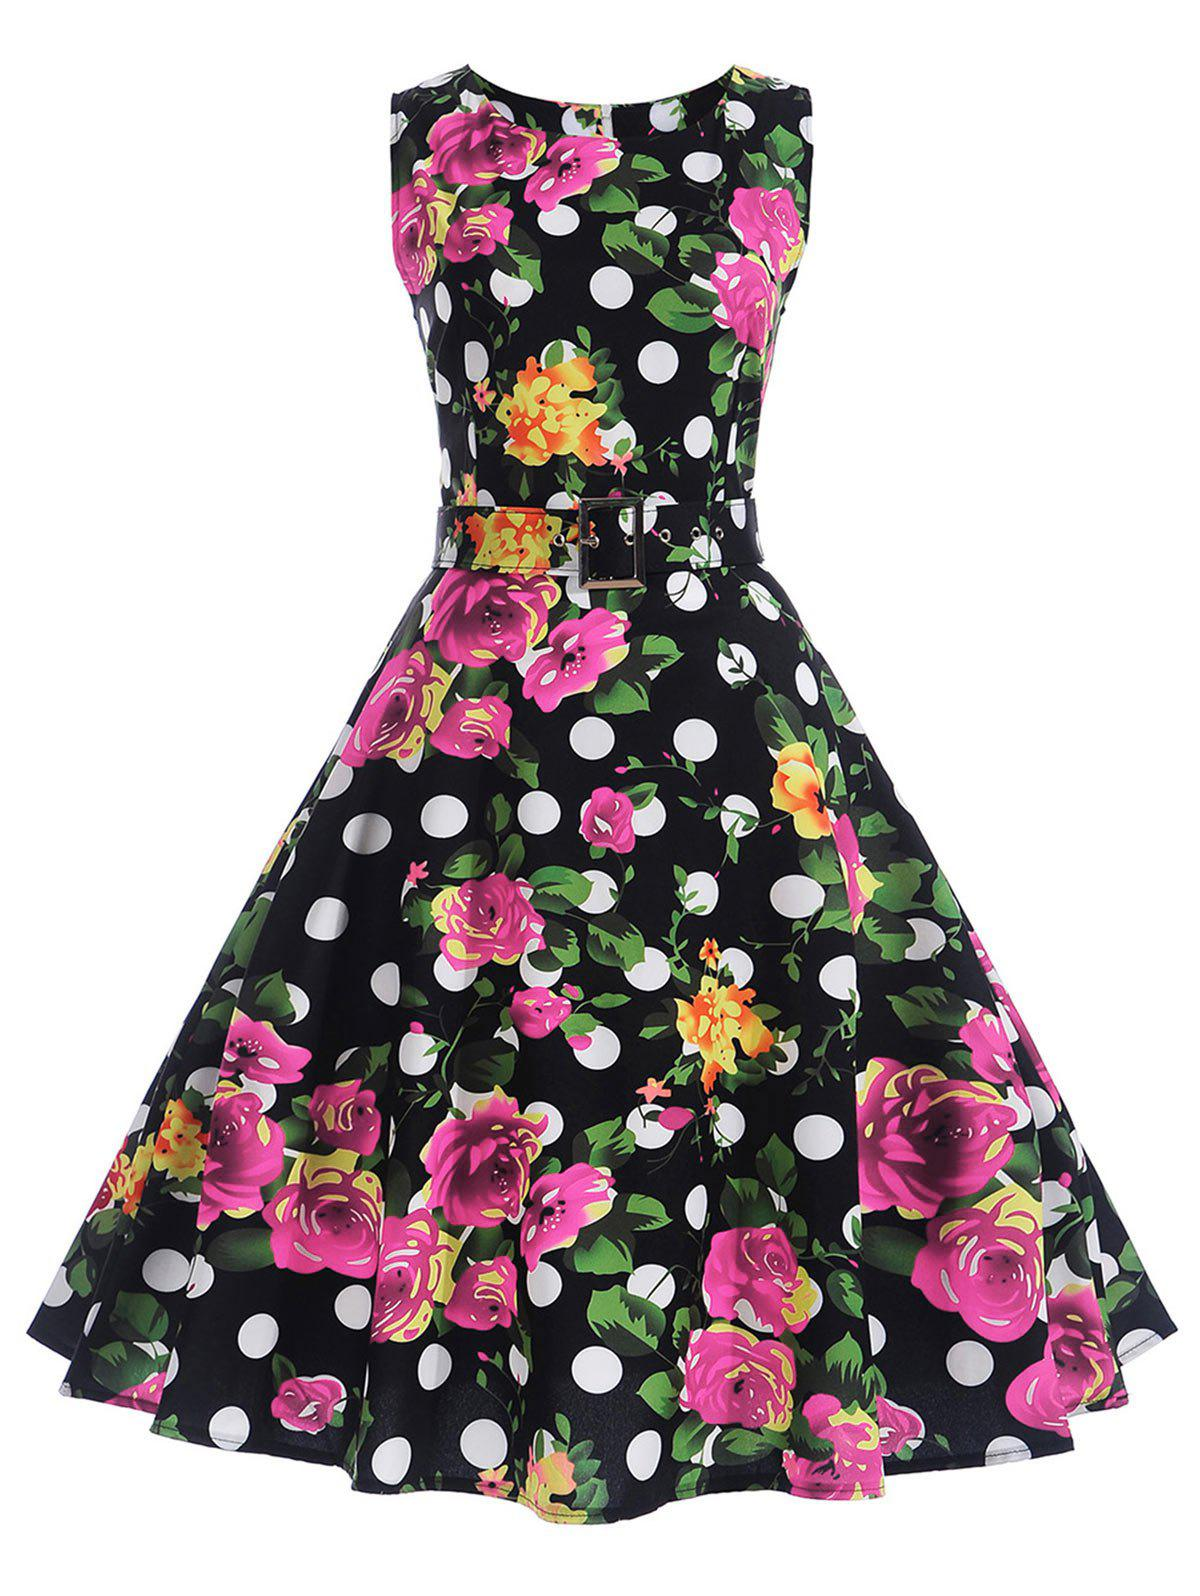 Polka Dot Floral A Line Vintage Dress - BLACK XL